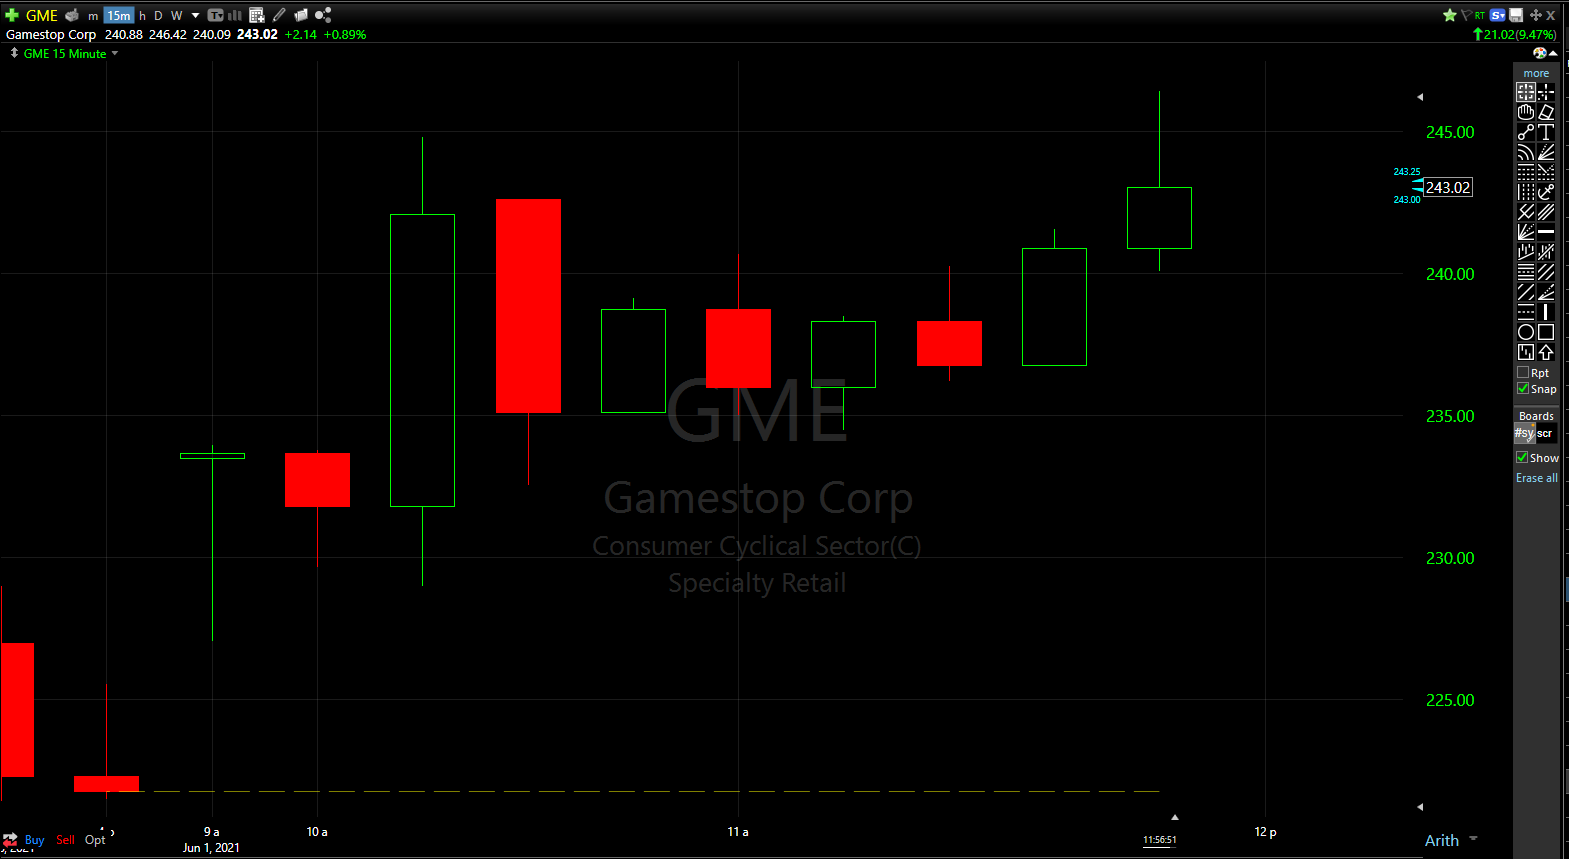 GME shares are up nearly 10% on the day.